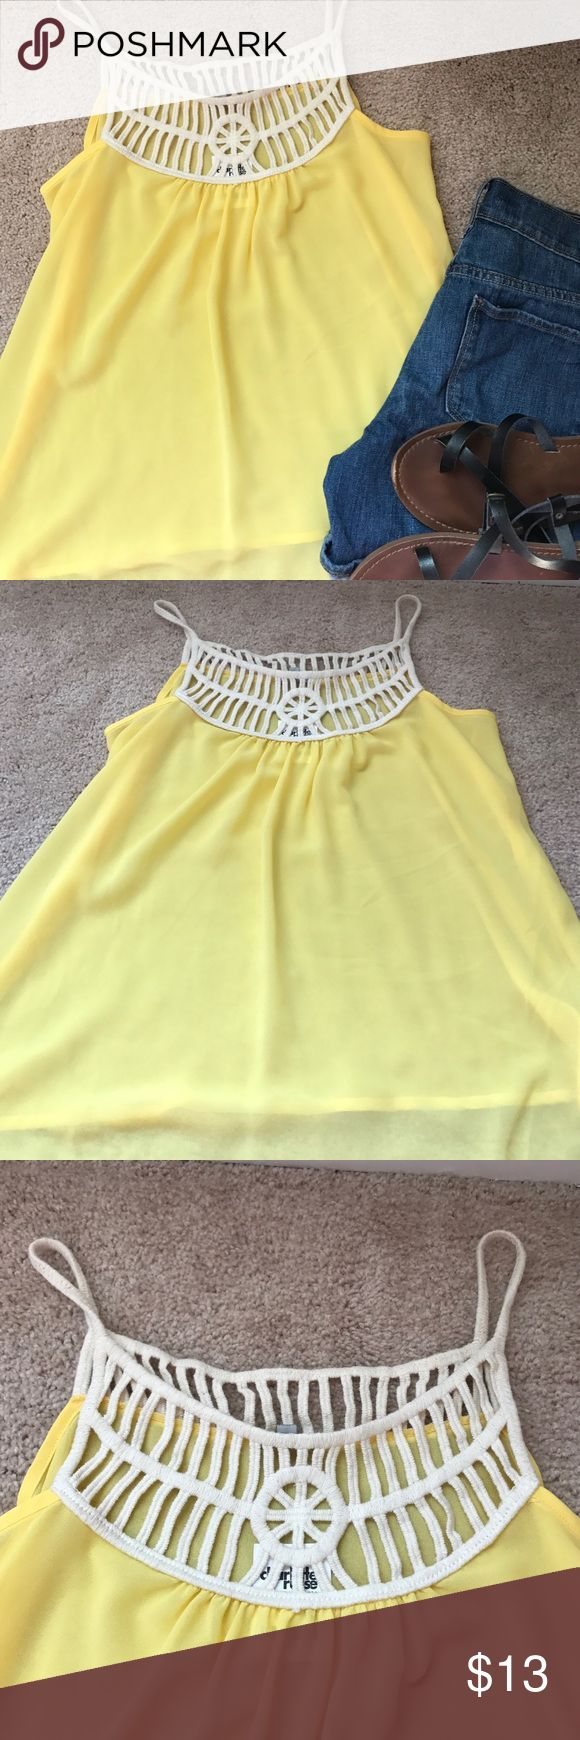 NWT Charlotte Russe Bright Yellow Tank Top Super summery Bright Yellow Tank Top NWT, never worn..Size M..fabric is Sheer and has a cute rope like detail to the top.. measurements laying flat: length 23 inches, bust 17 inches, waist 22 inches Charlotte Russe Tops Tank Tops